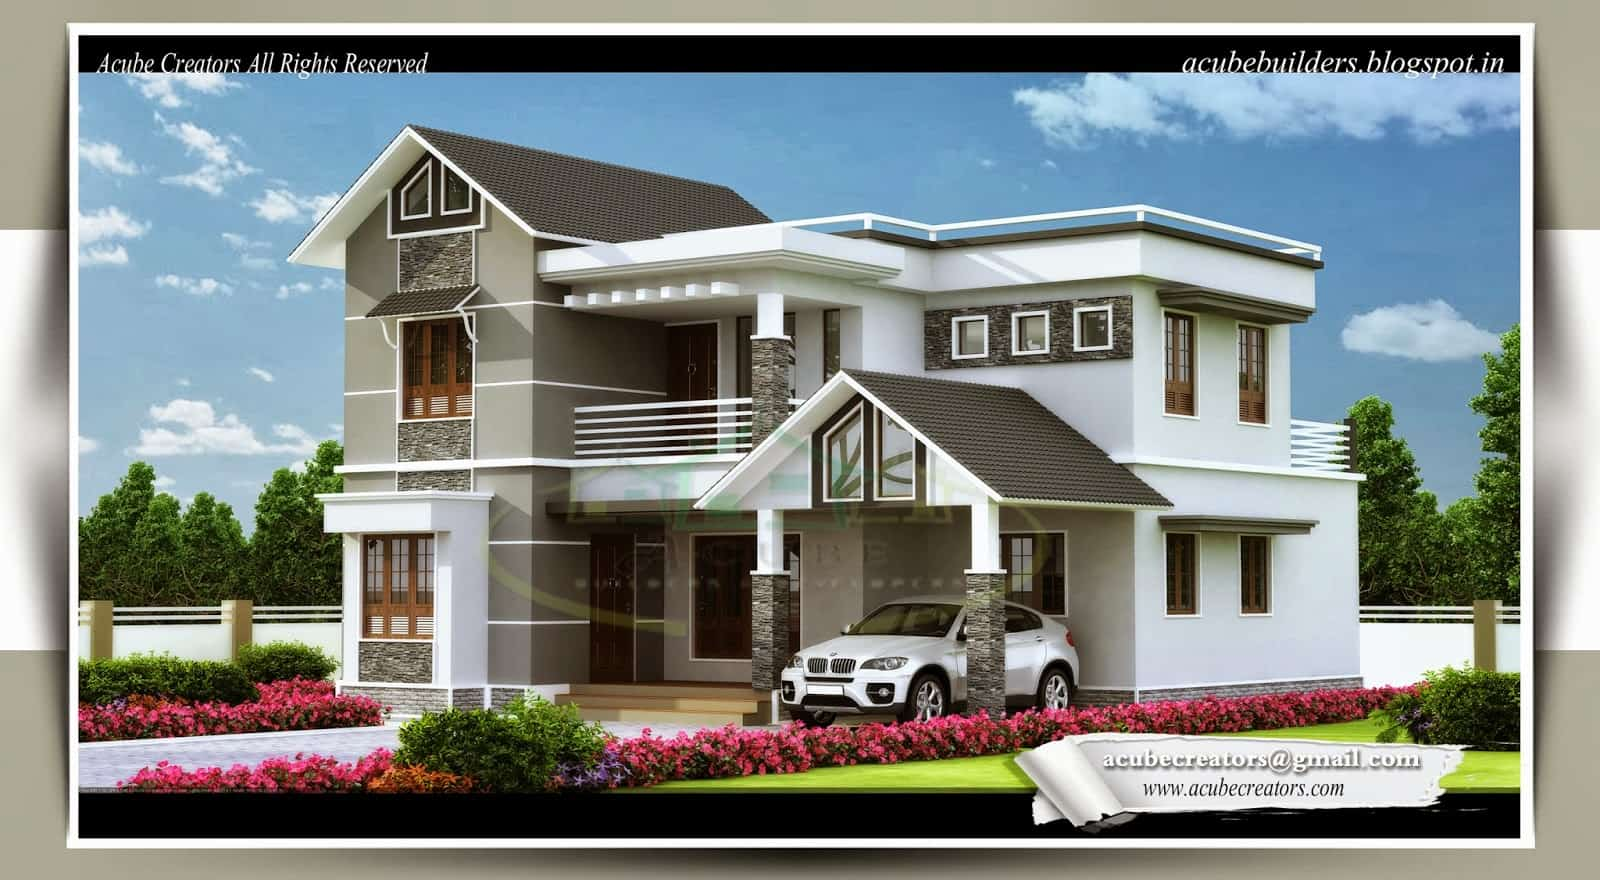 Kerala home design photos Dezine house